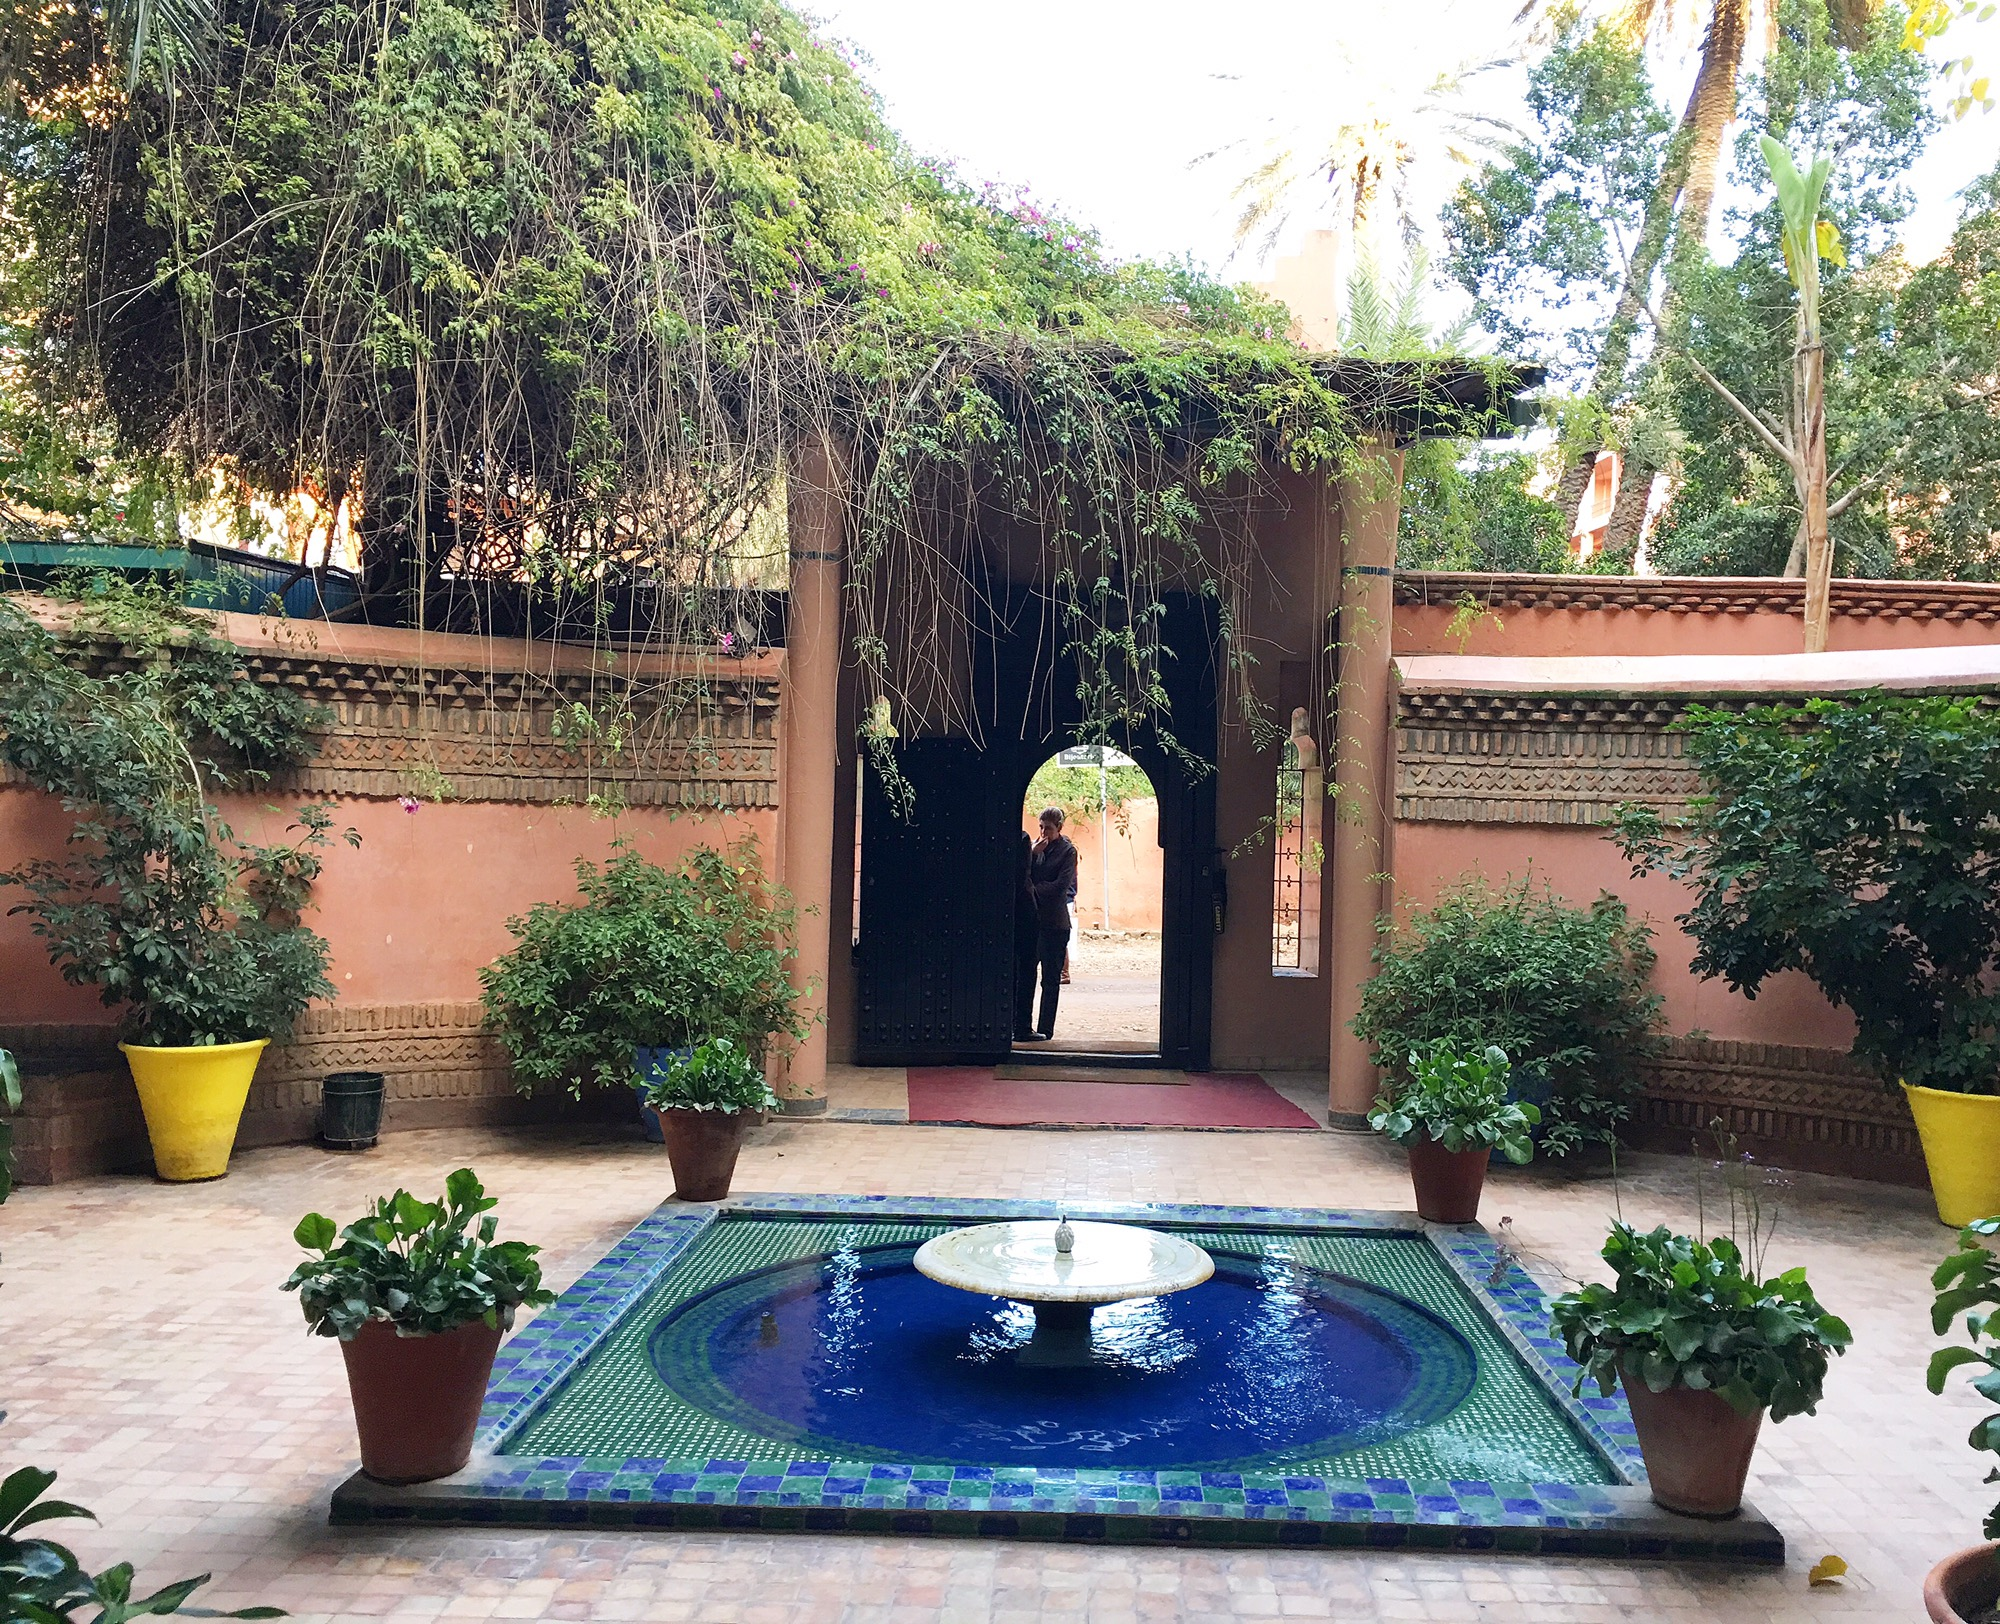 Jardin majorelle in marrakech is it worth visiting for Jardin majorelle